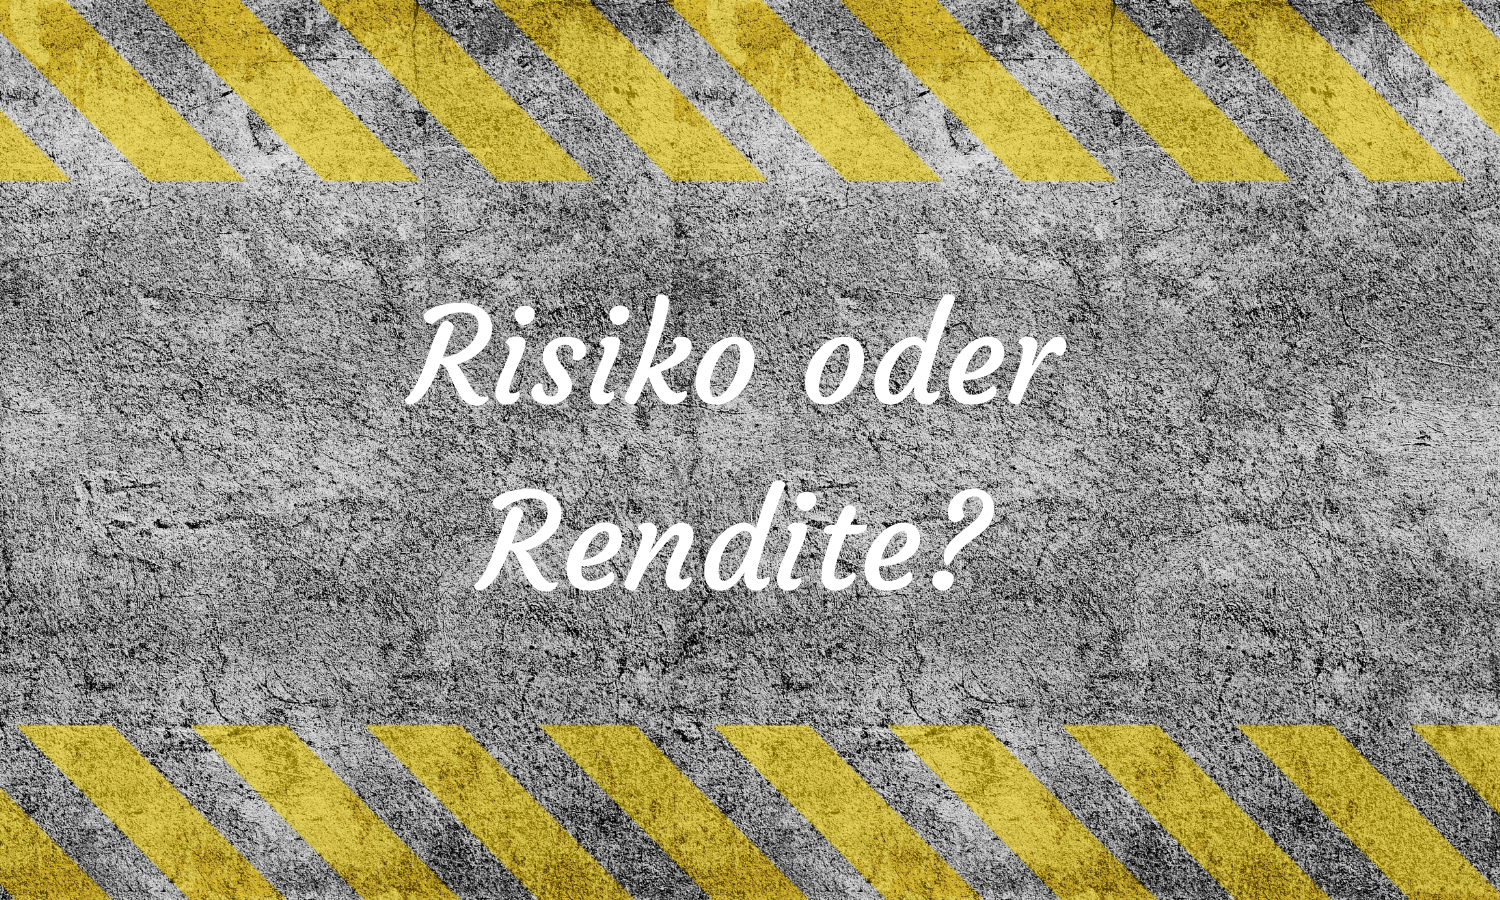 Risiko und Rendite: No risk, no money?